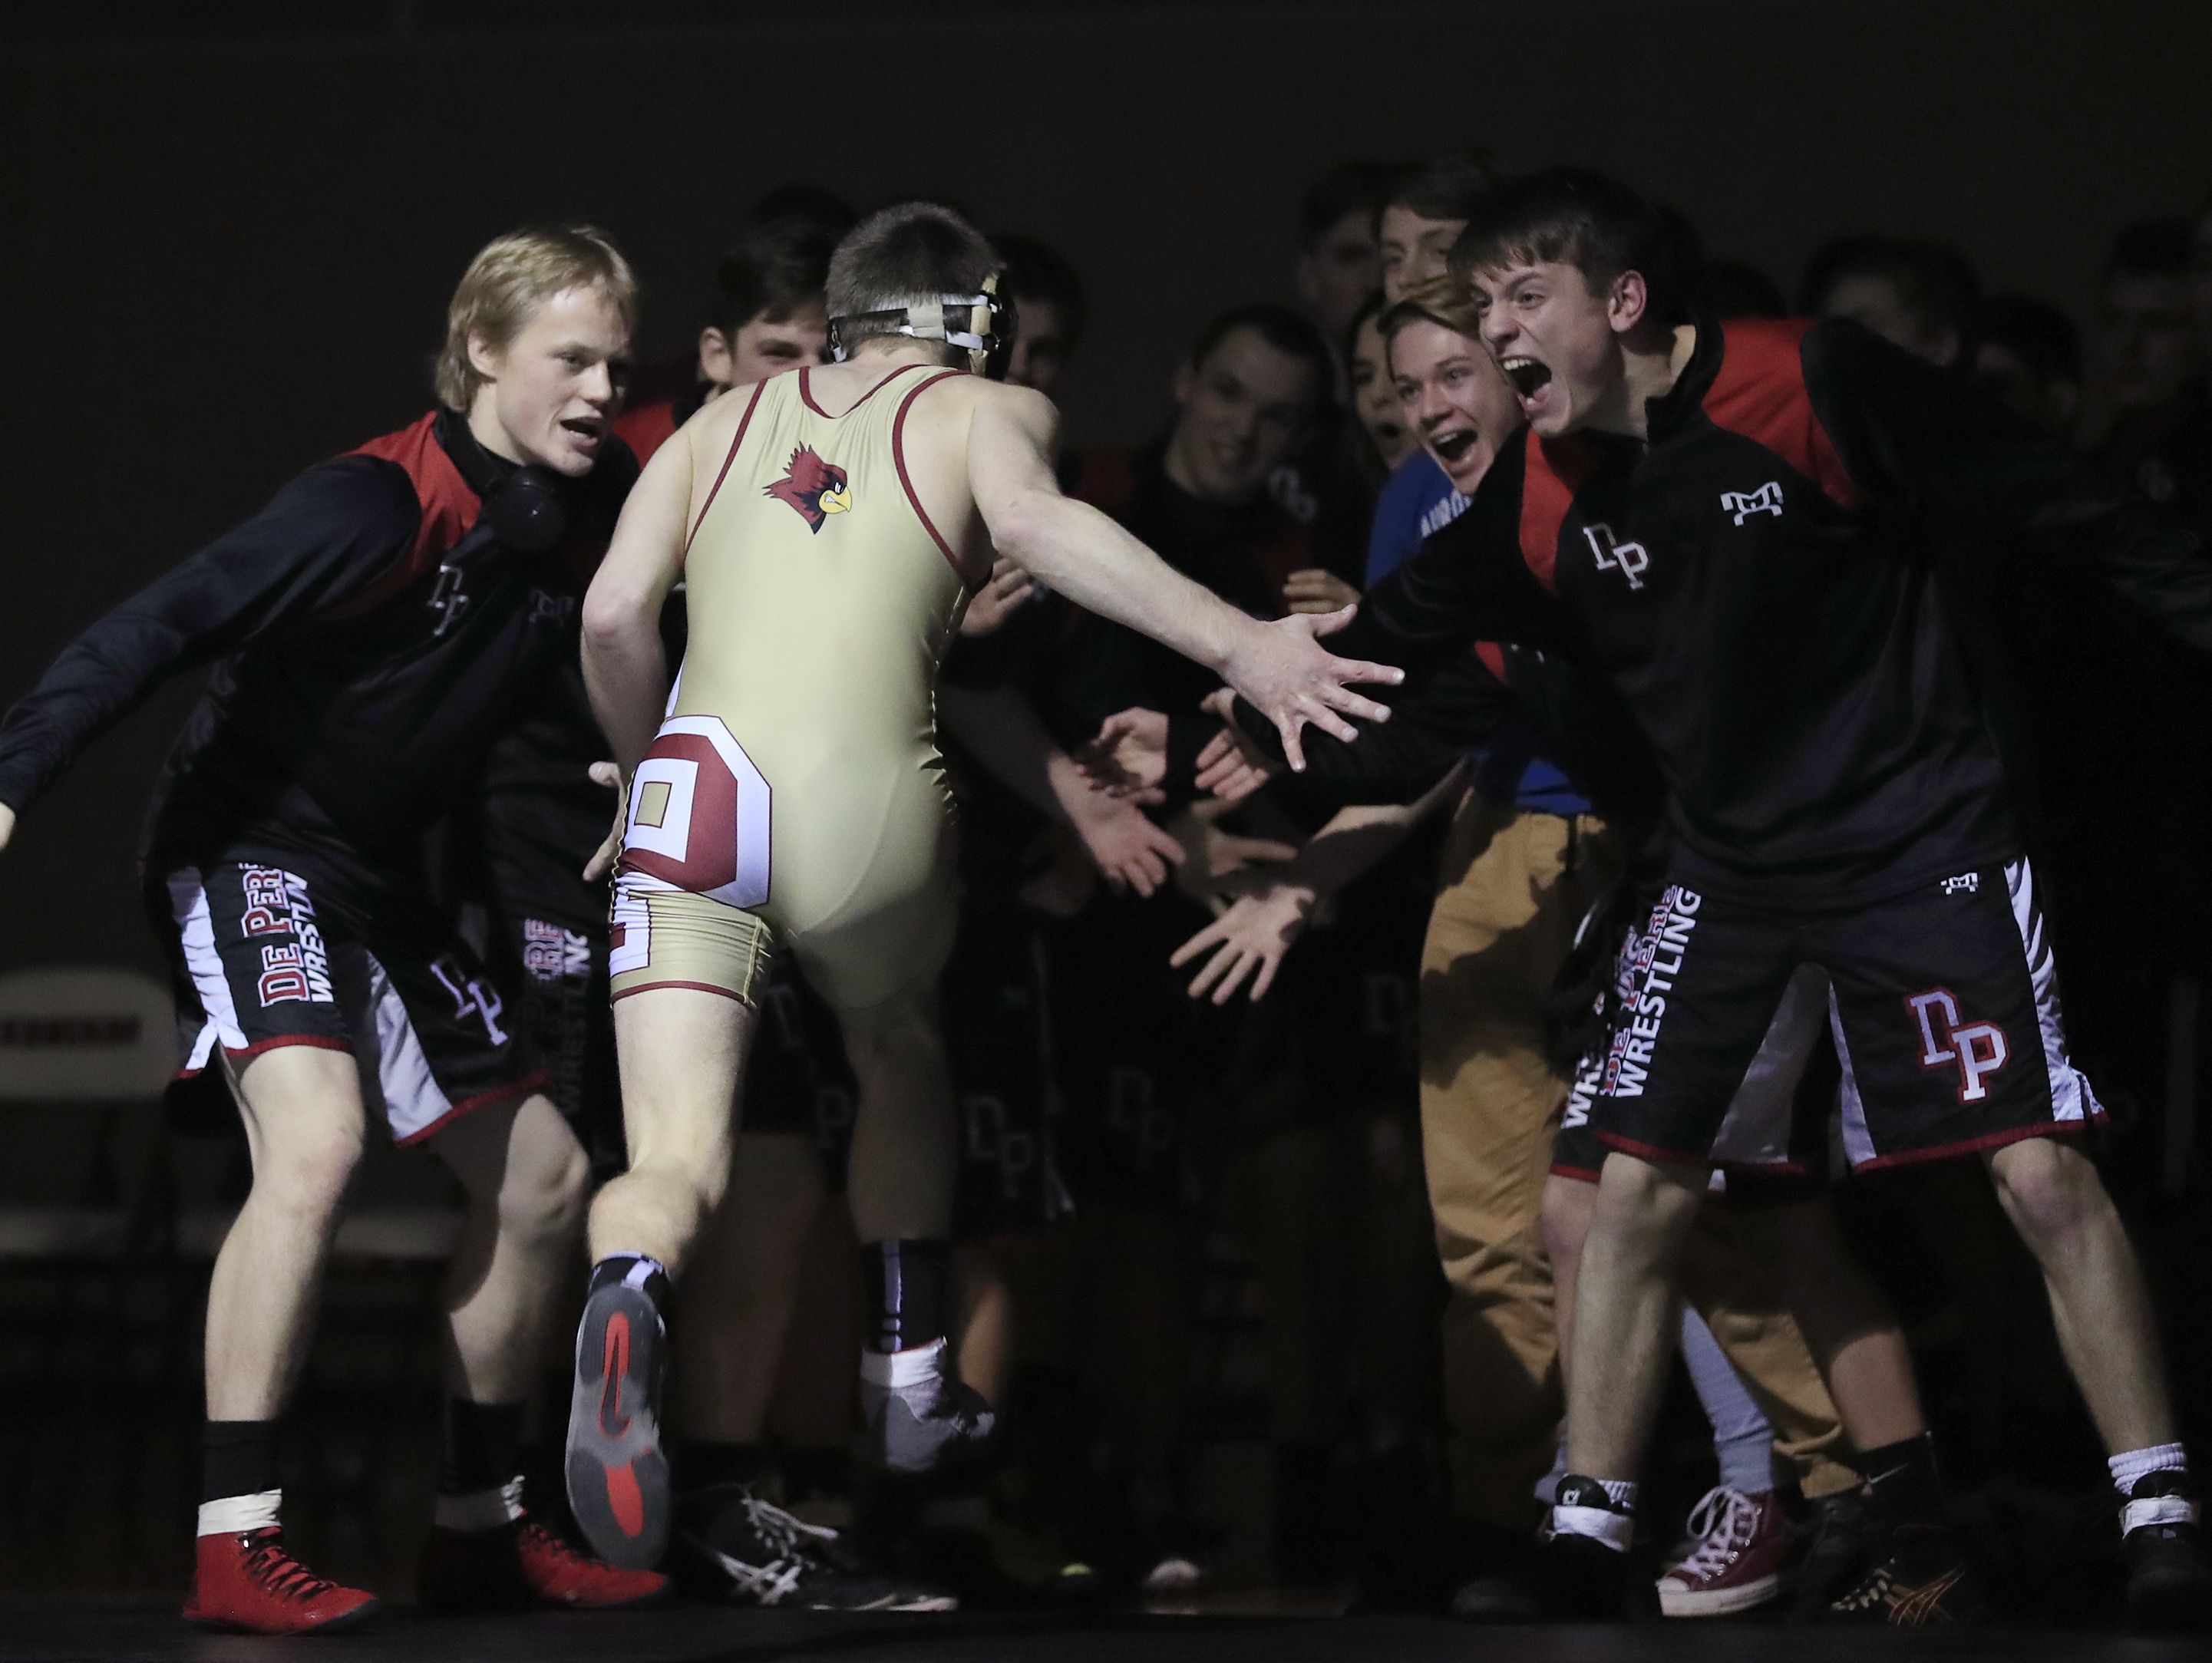 De Pere's Max Bruss runs to his teammates after pinning Pulaski's Brock Gracyalny in the 138-pound bout of a Fox River Classic Conference dual at De Pere on Jan. 19.